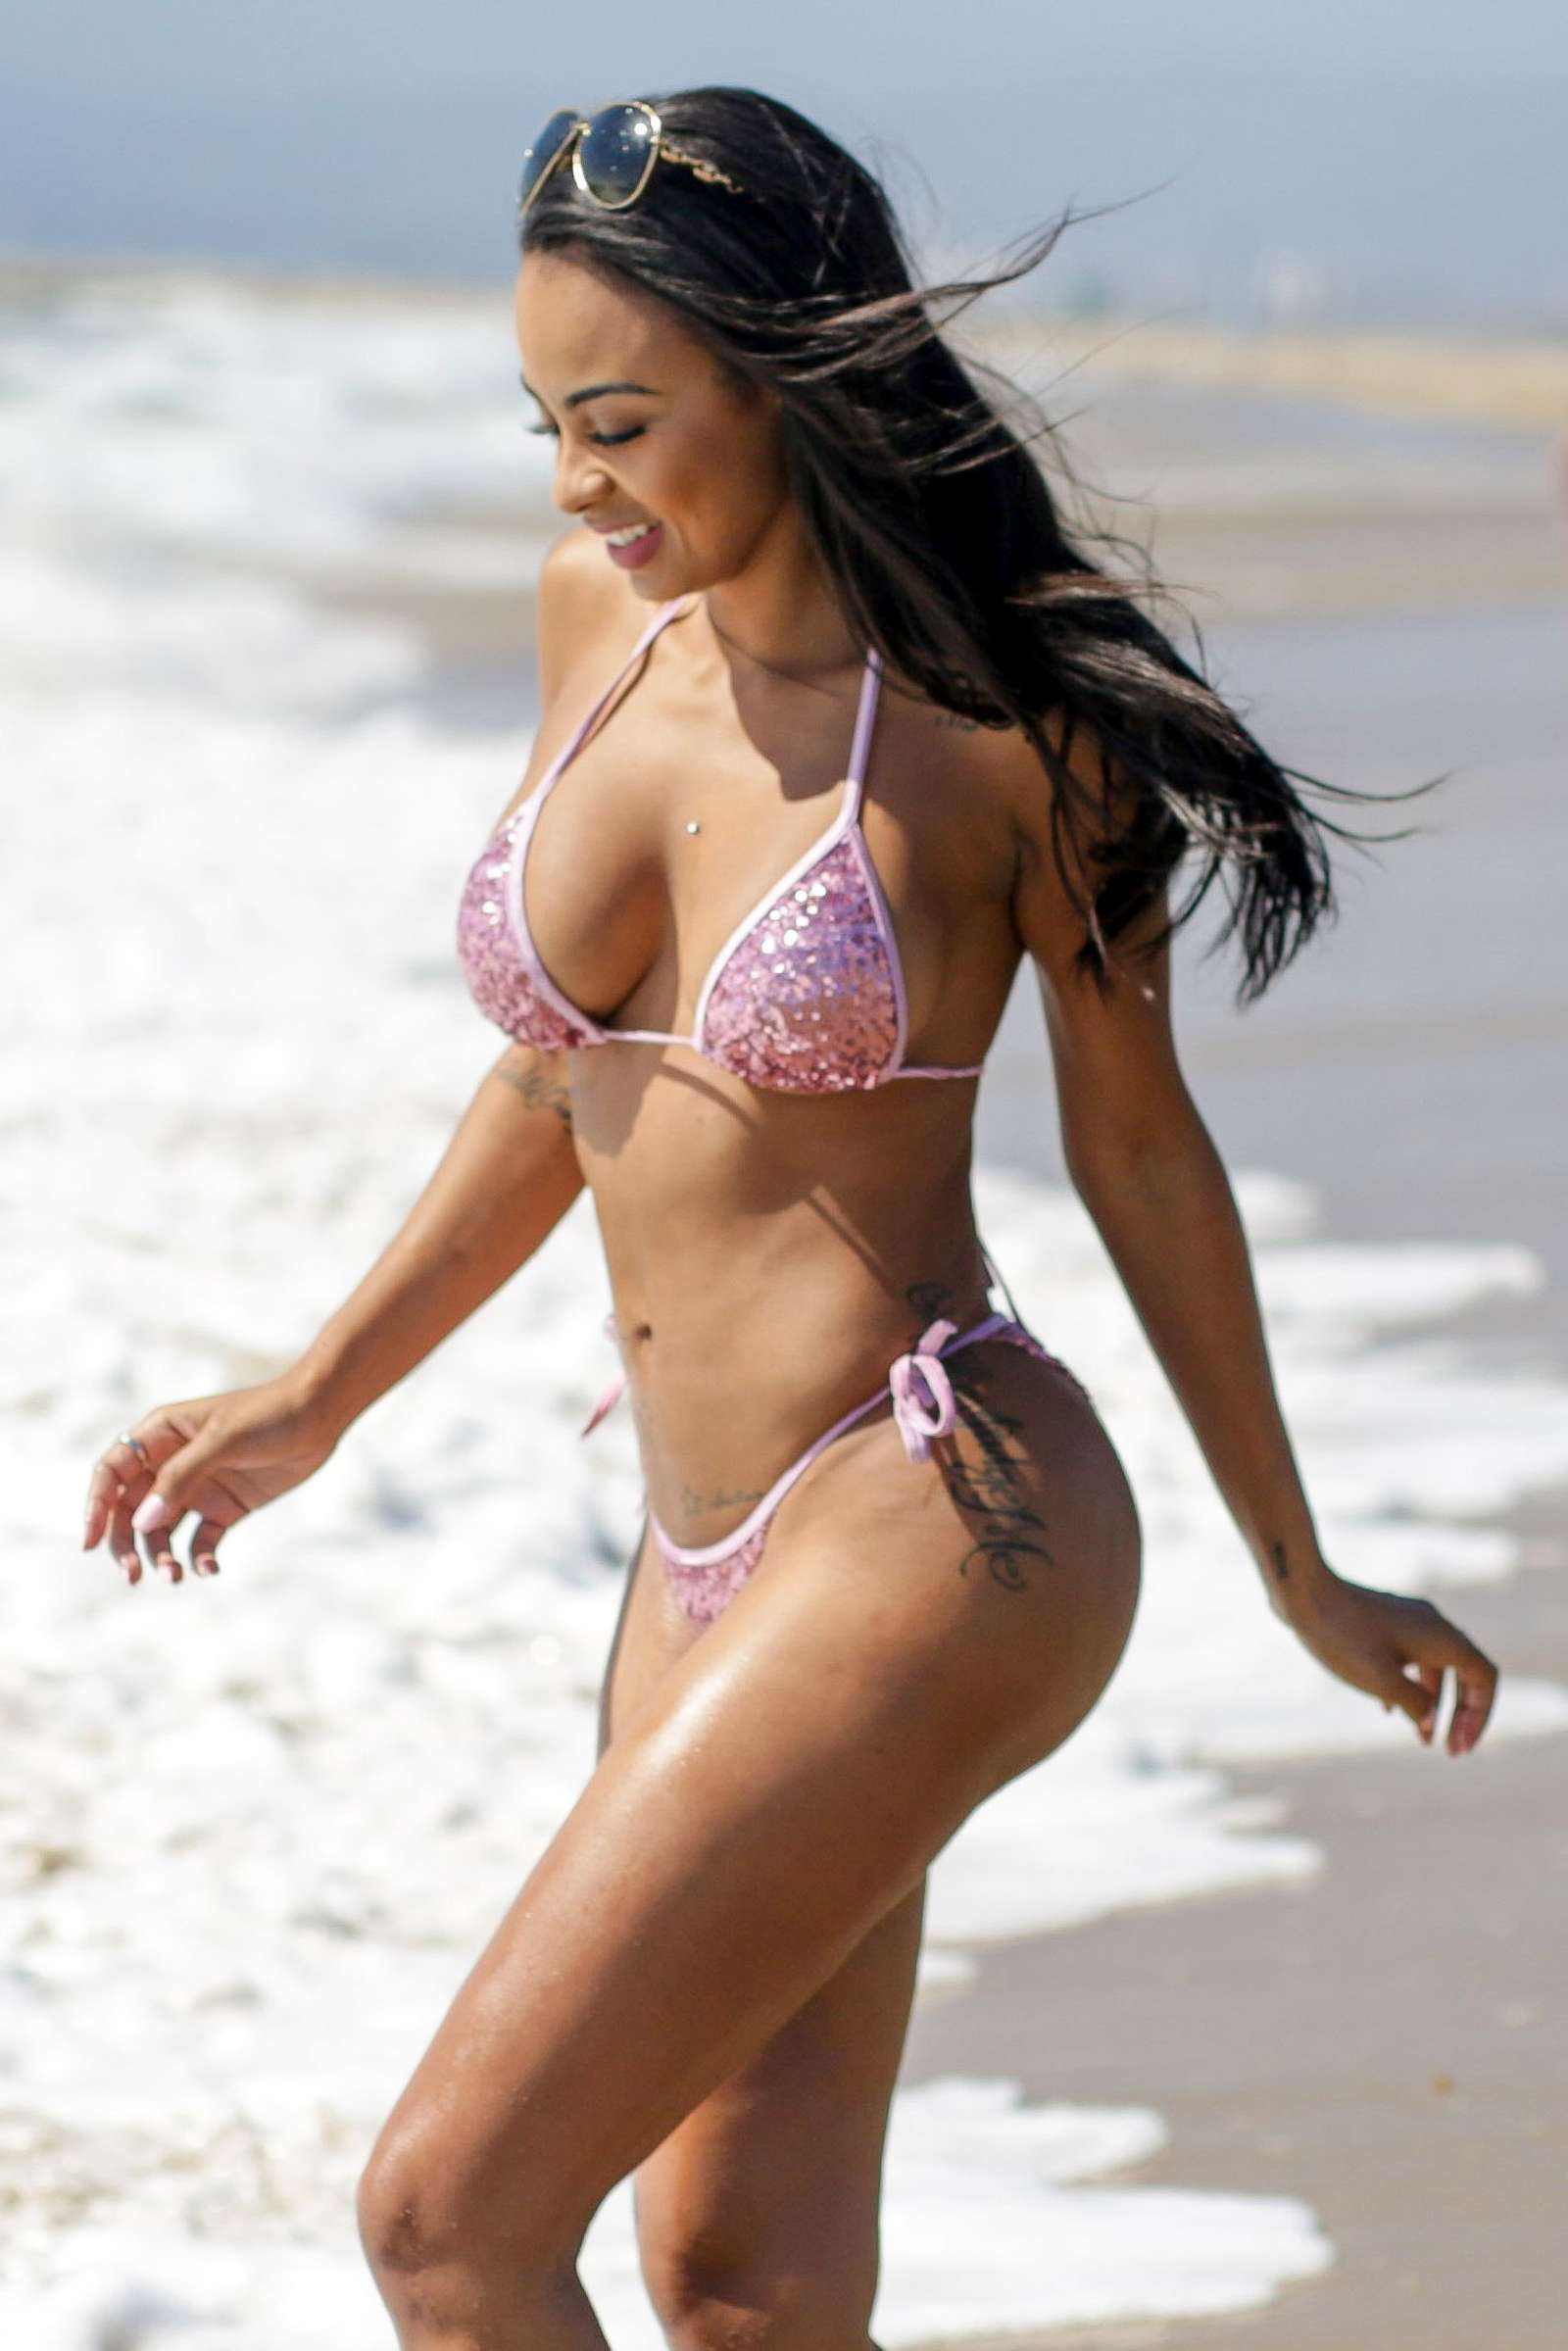 Analicia Chaves 2016 : Analicia Chaves in Bikini 2016 -01